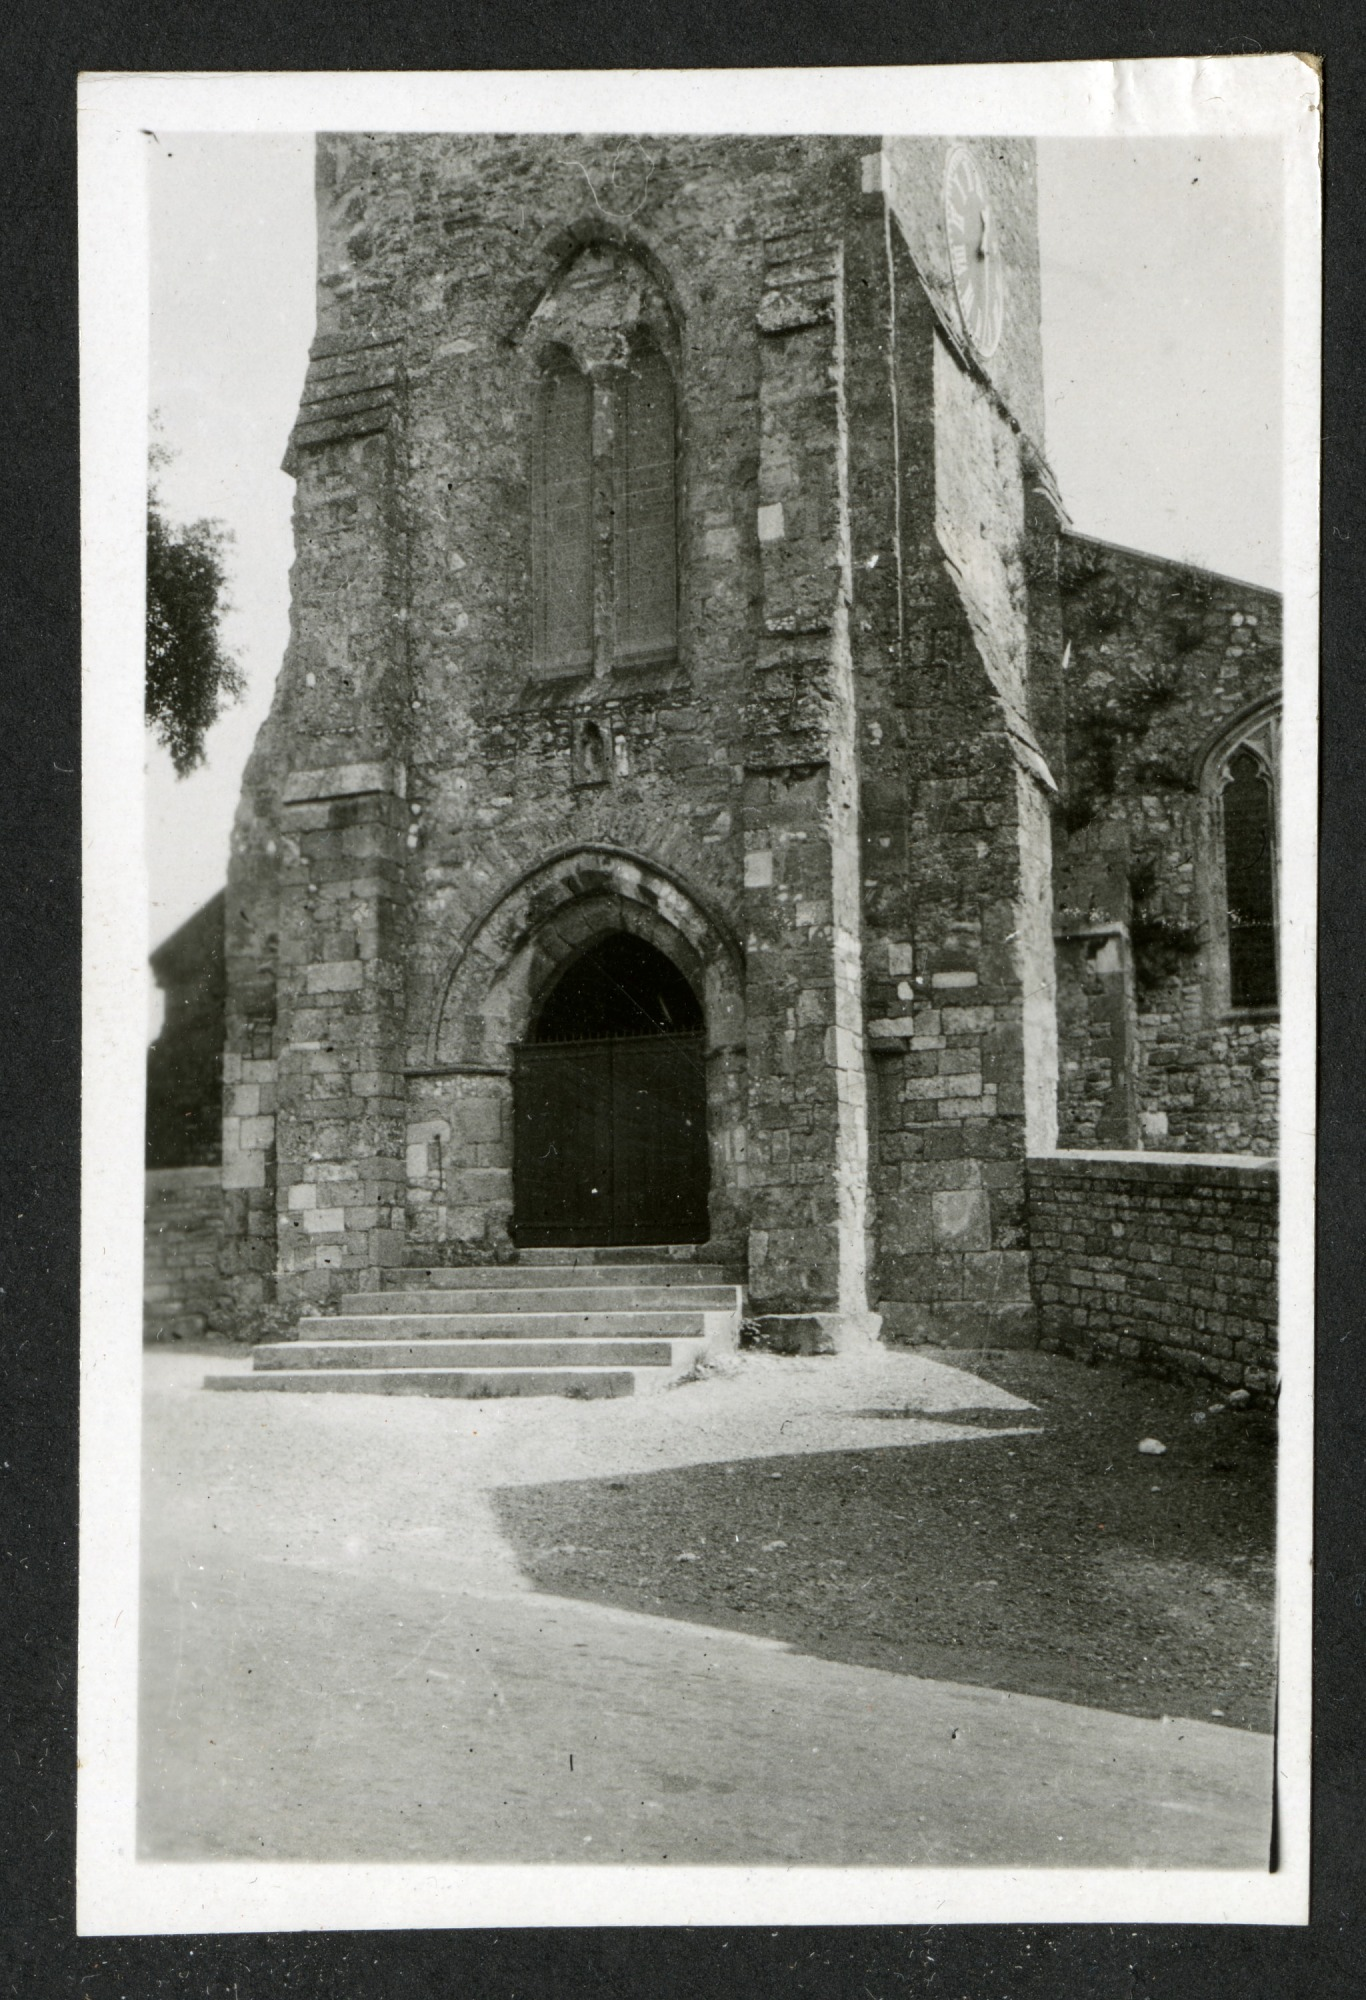 Unidentified Church, 1925, Smithsonian Institution Archives, SIA RU007091 [SIA2015-003207].